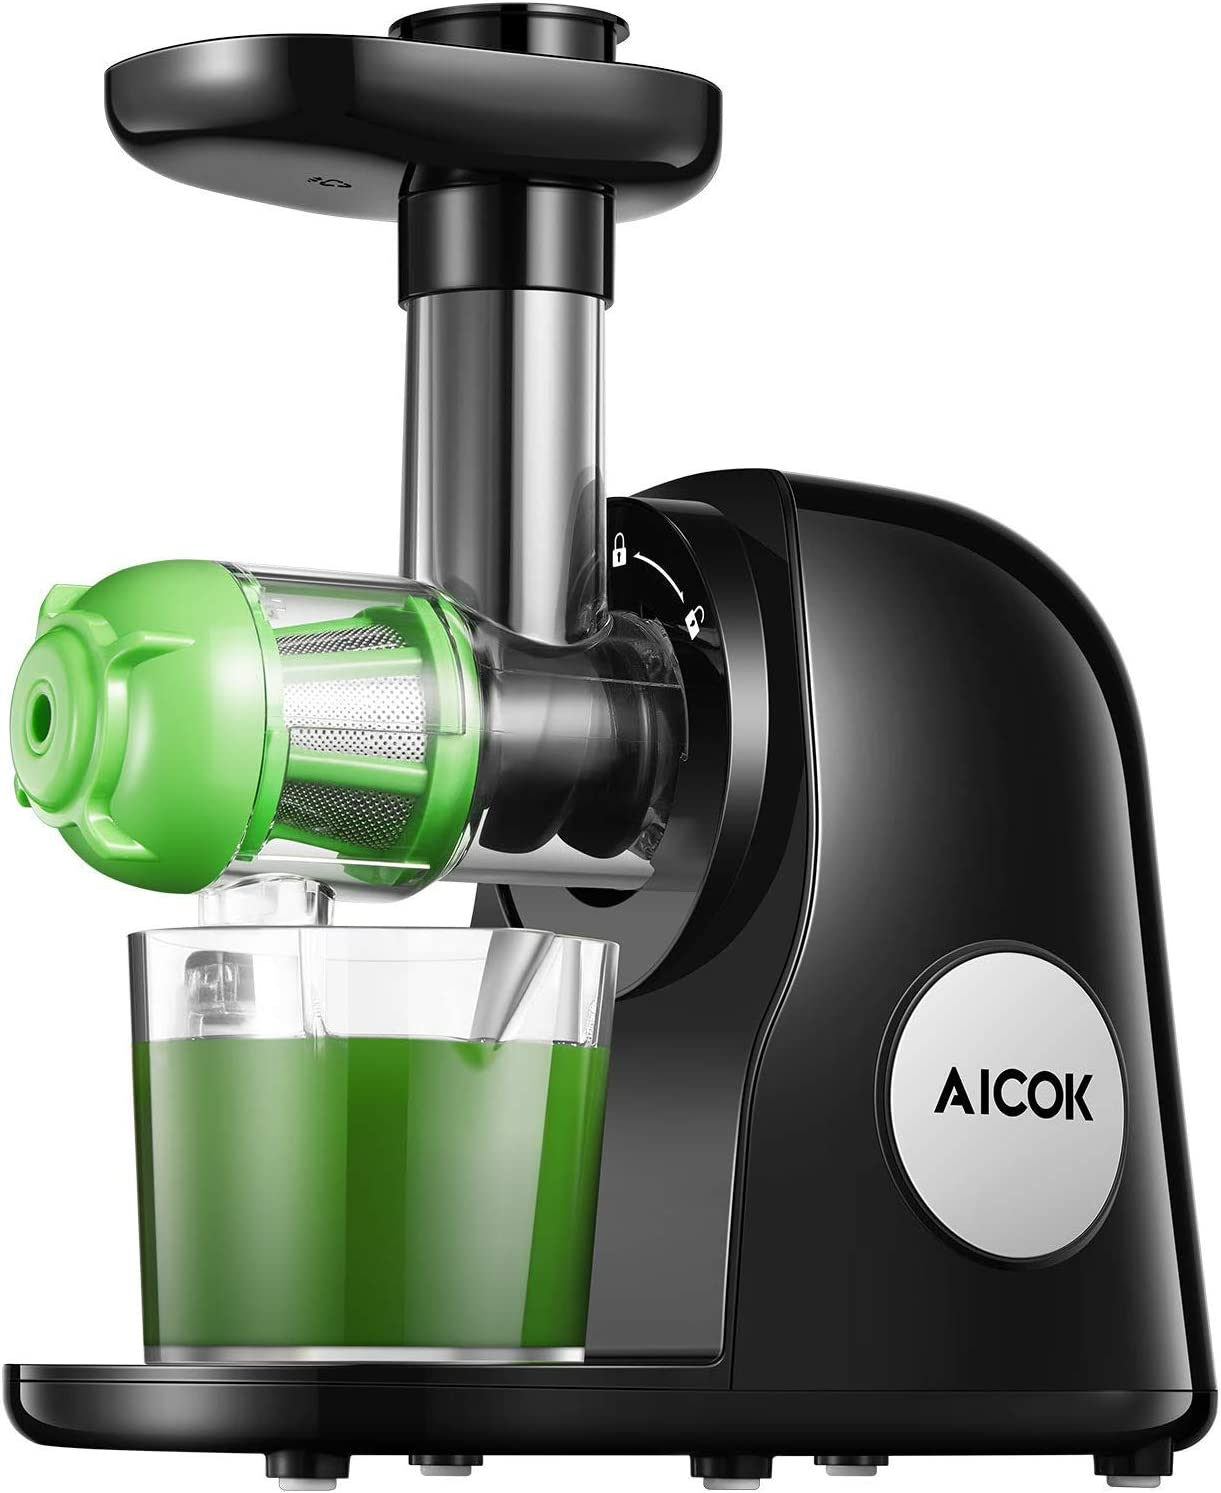 Aicok Juicer Machines, Slow Masticating Juicer